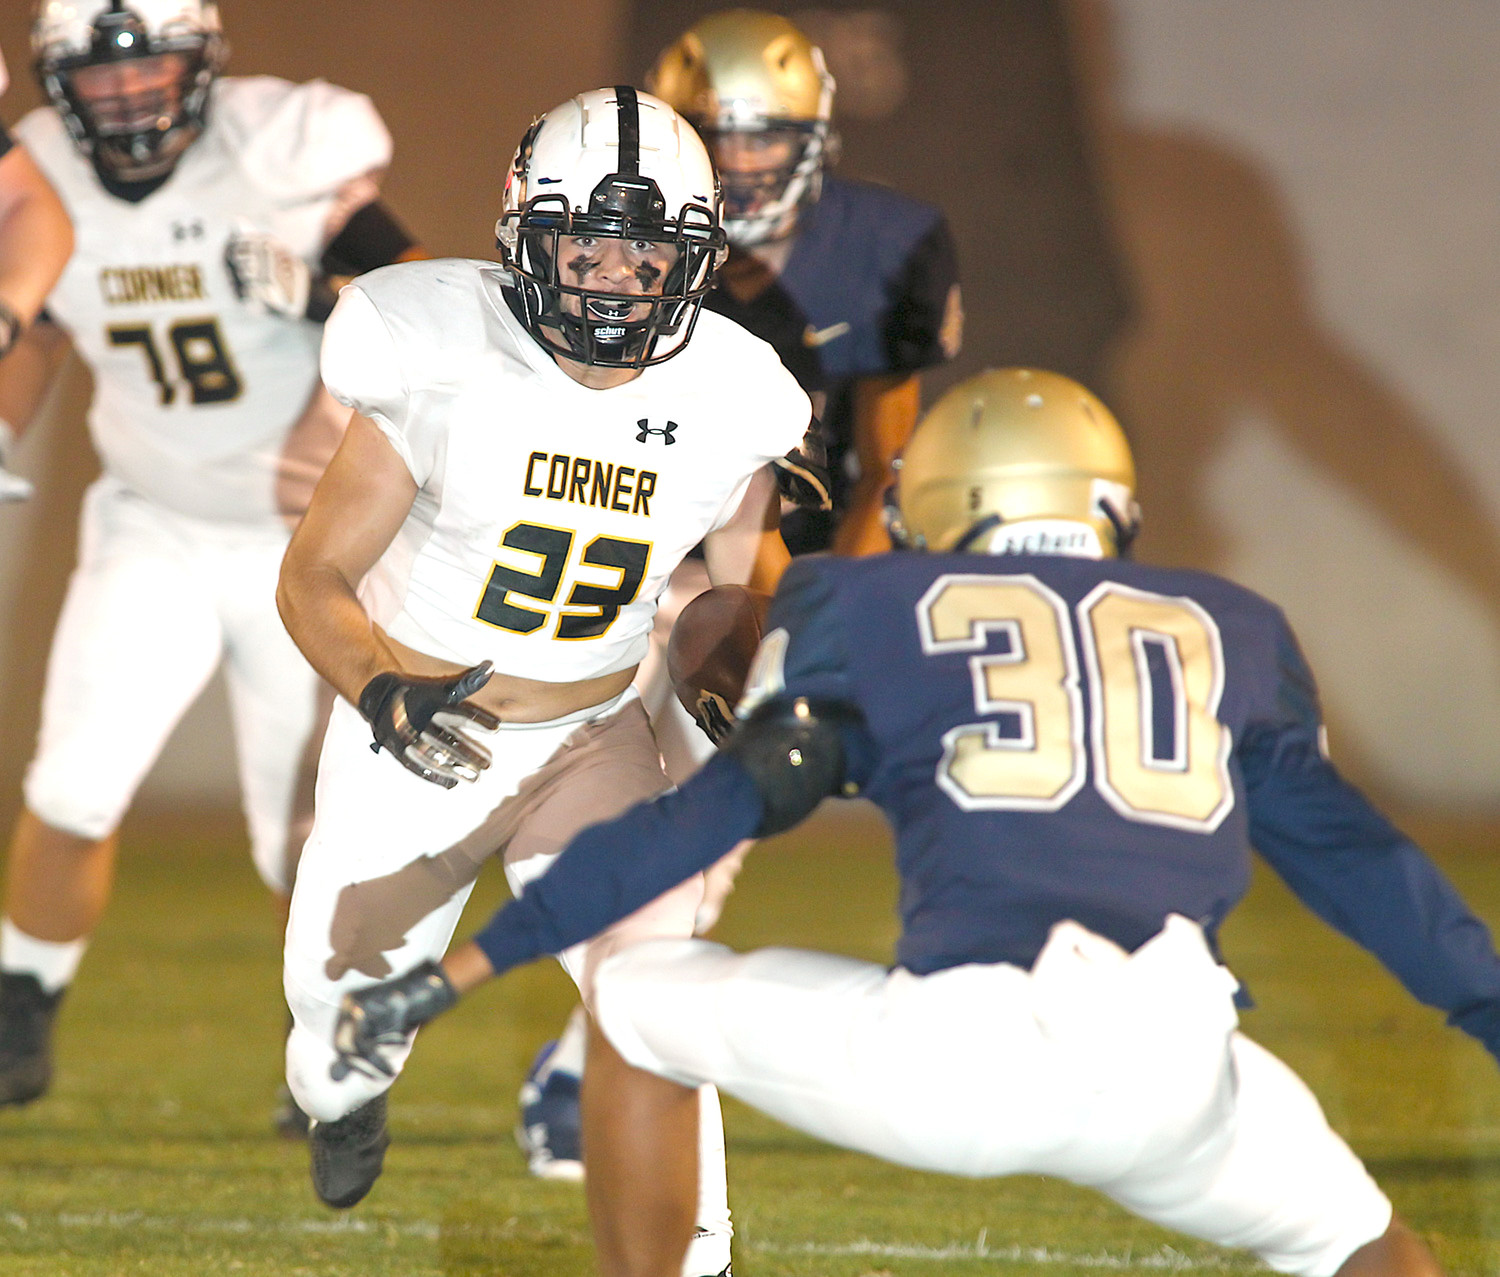 Corner's Thomas Reed looks to confront Dora's Kaleb Towns during their game Friday night.